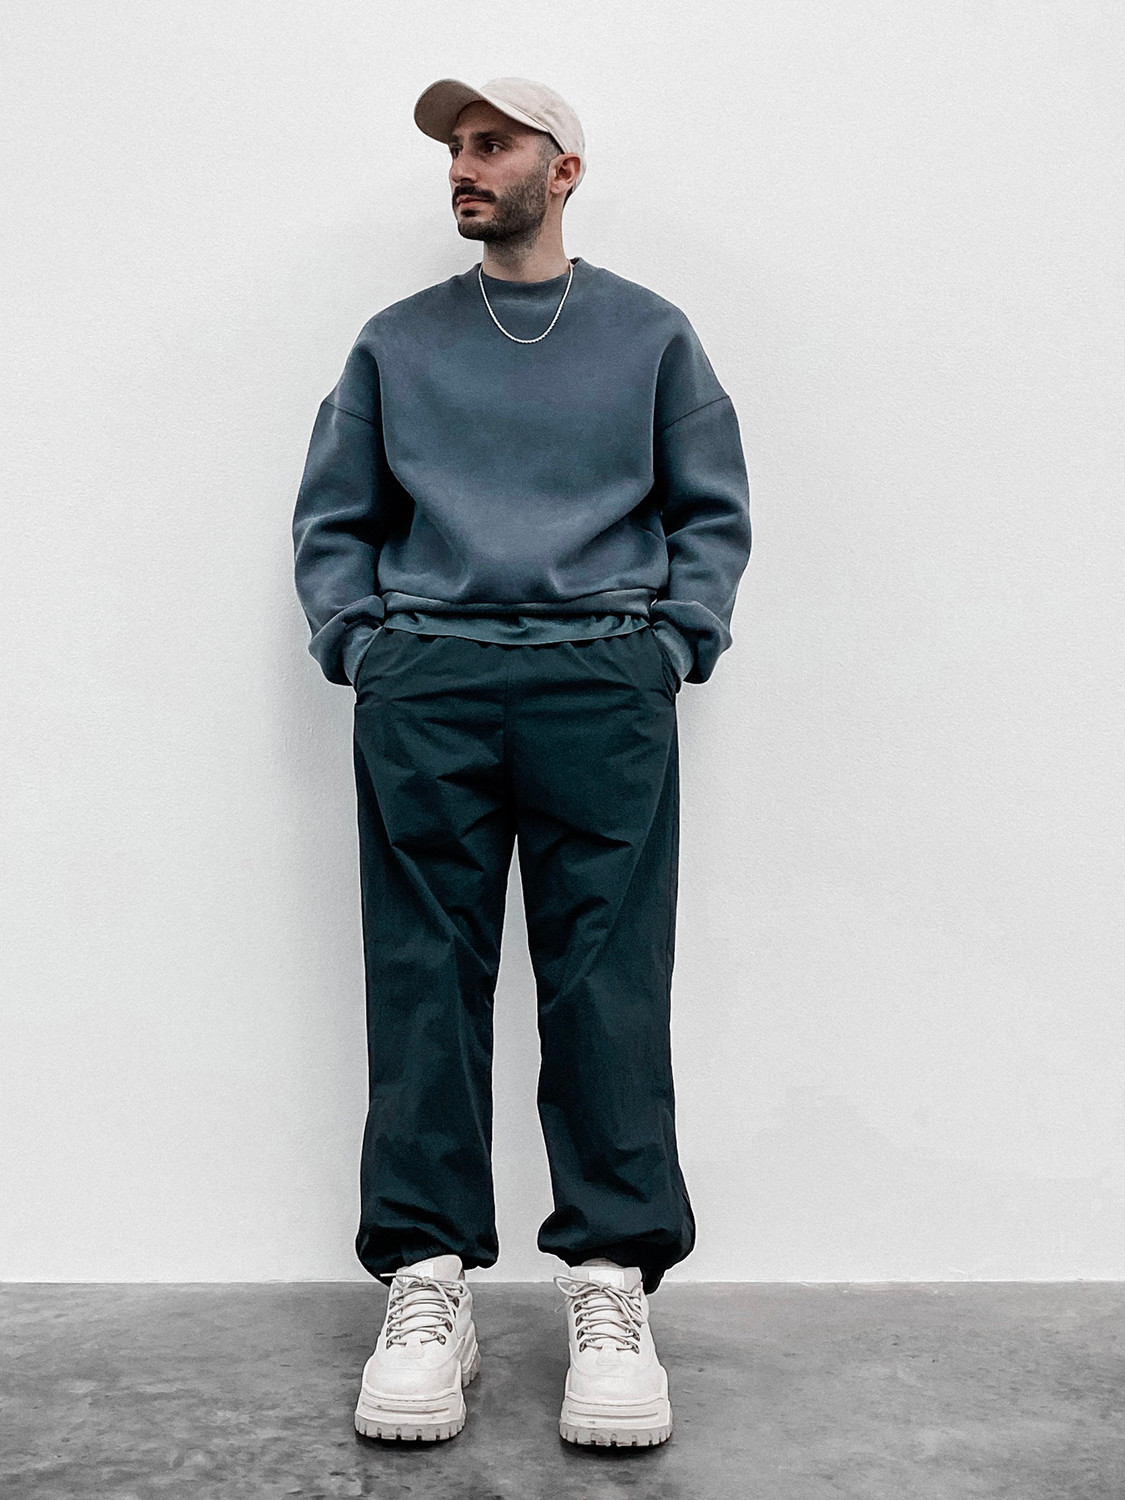 Men's outfit idea for 2021 with grey plain sweatshirt, black trackpants, neutral baseball / snapback cap, neutral sneakers. Suitable for fall and winter.